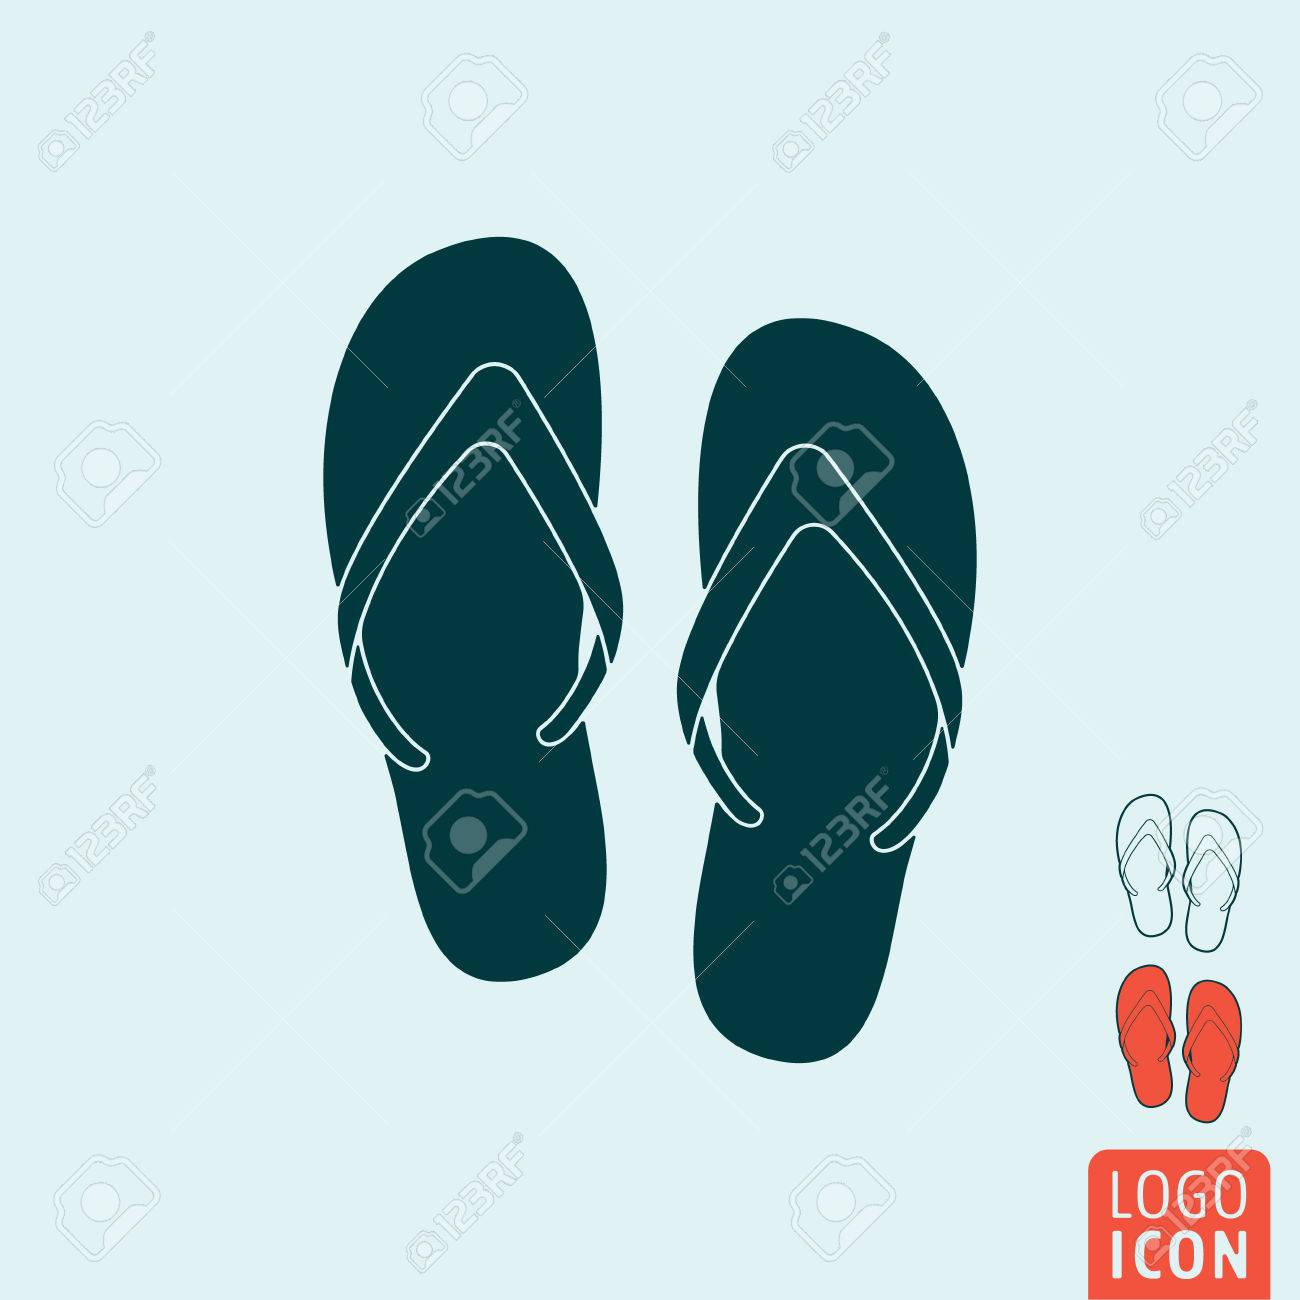 90b472eb0 Beach slippers icon. Beach slippers symbol. Flip-flop icon isolated. Vector  illustration